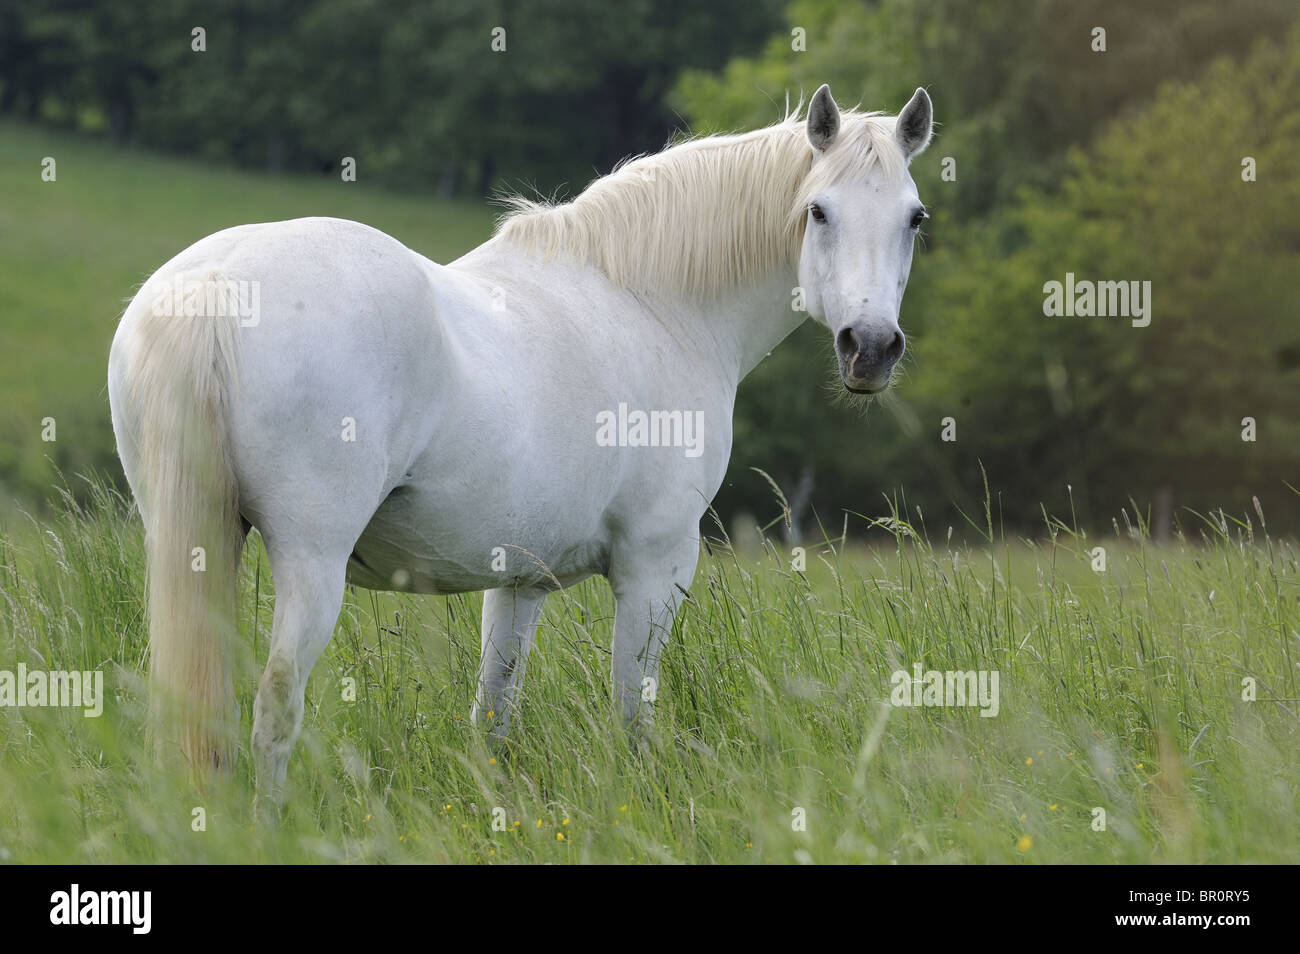 Connemara Pony (Equus ferus caballus). Gray mare standing on a meadow. Stock Photo